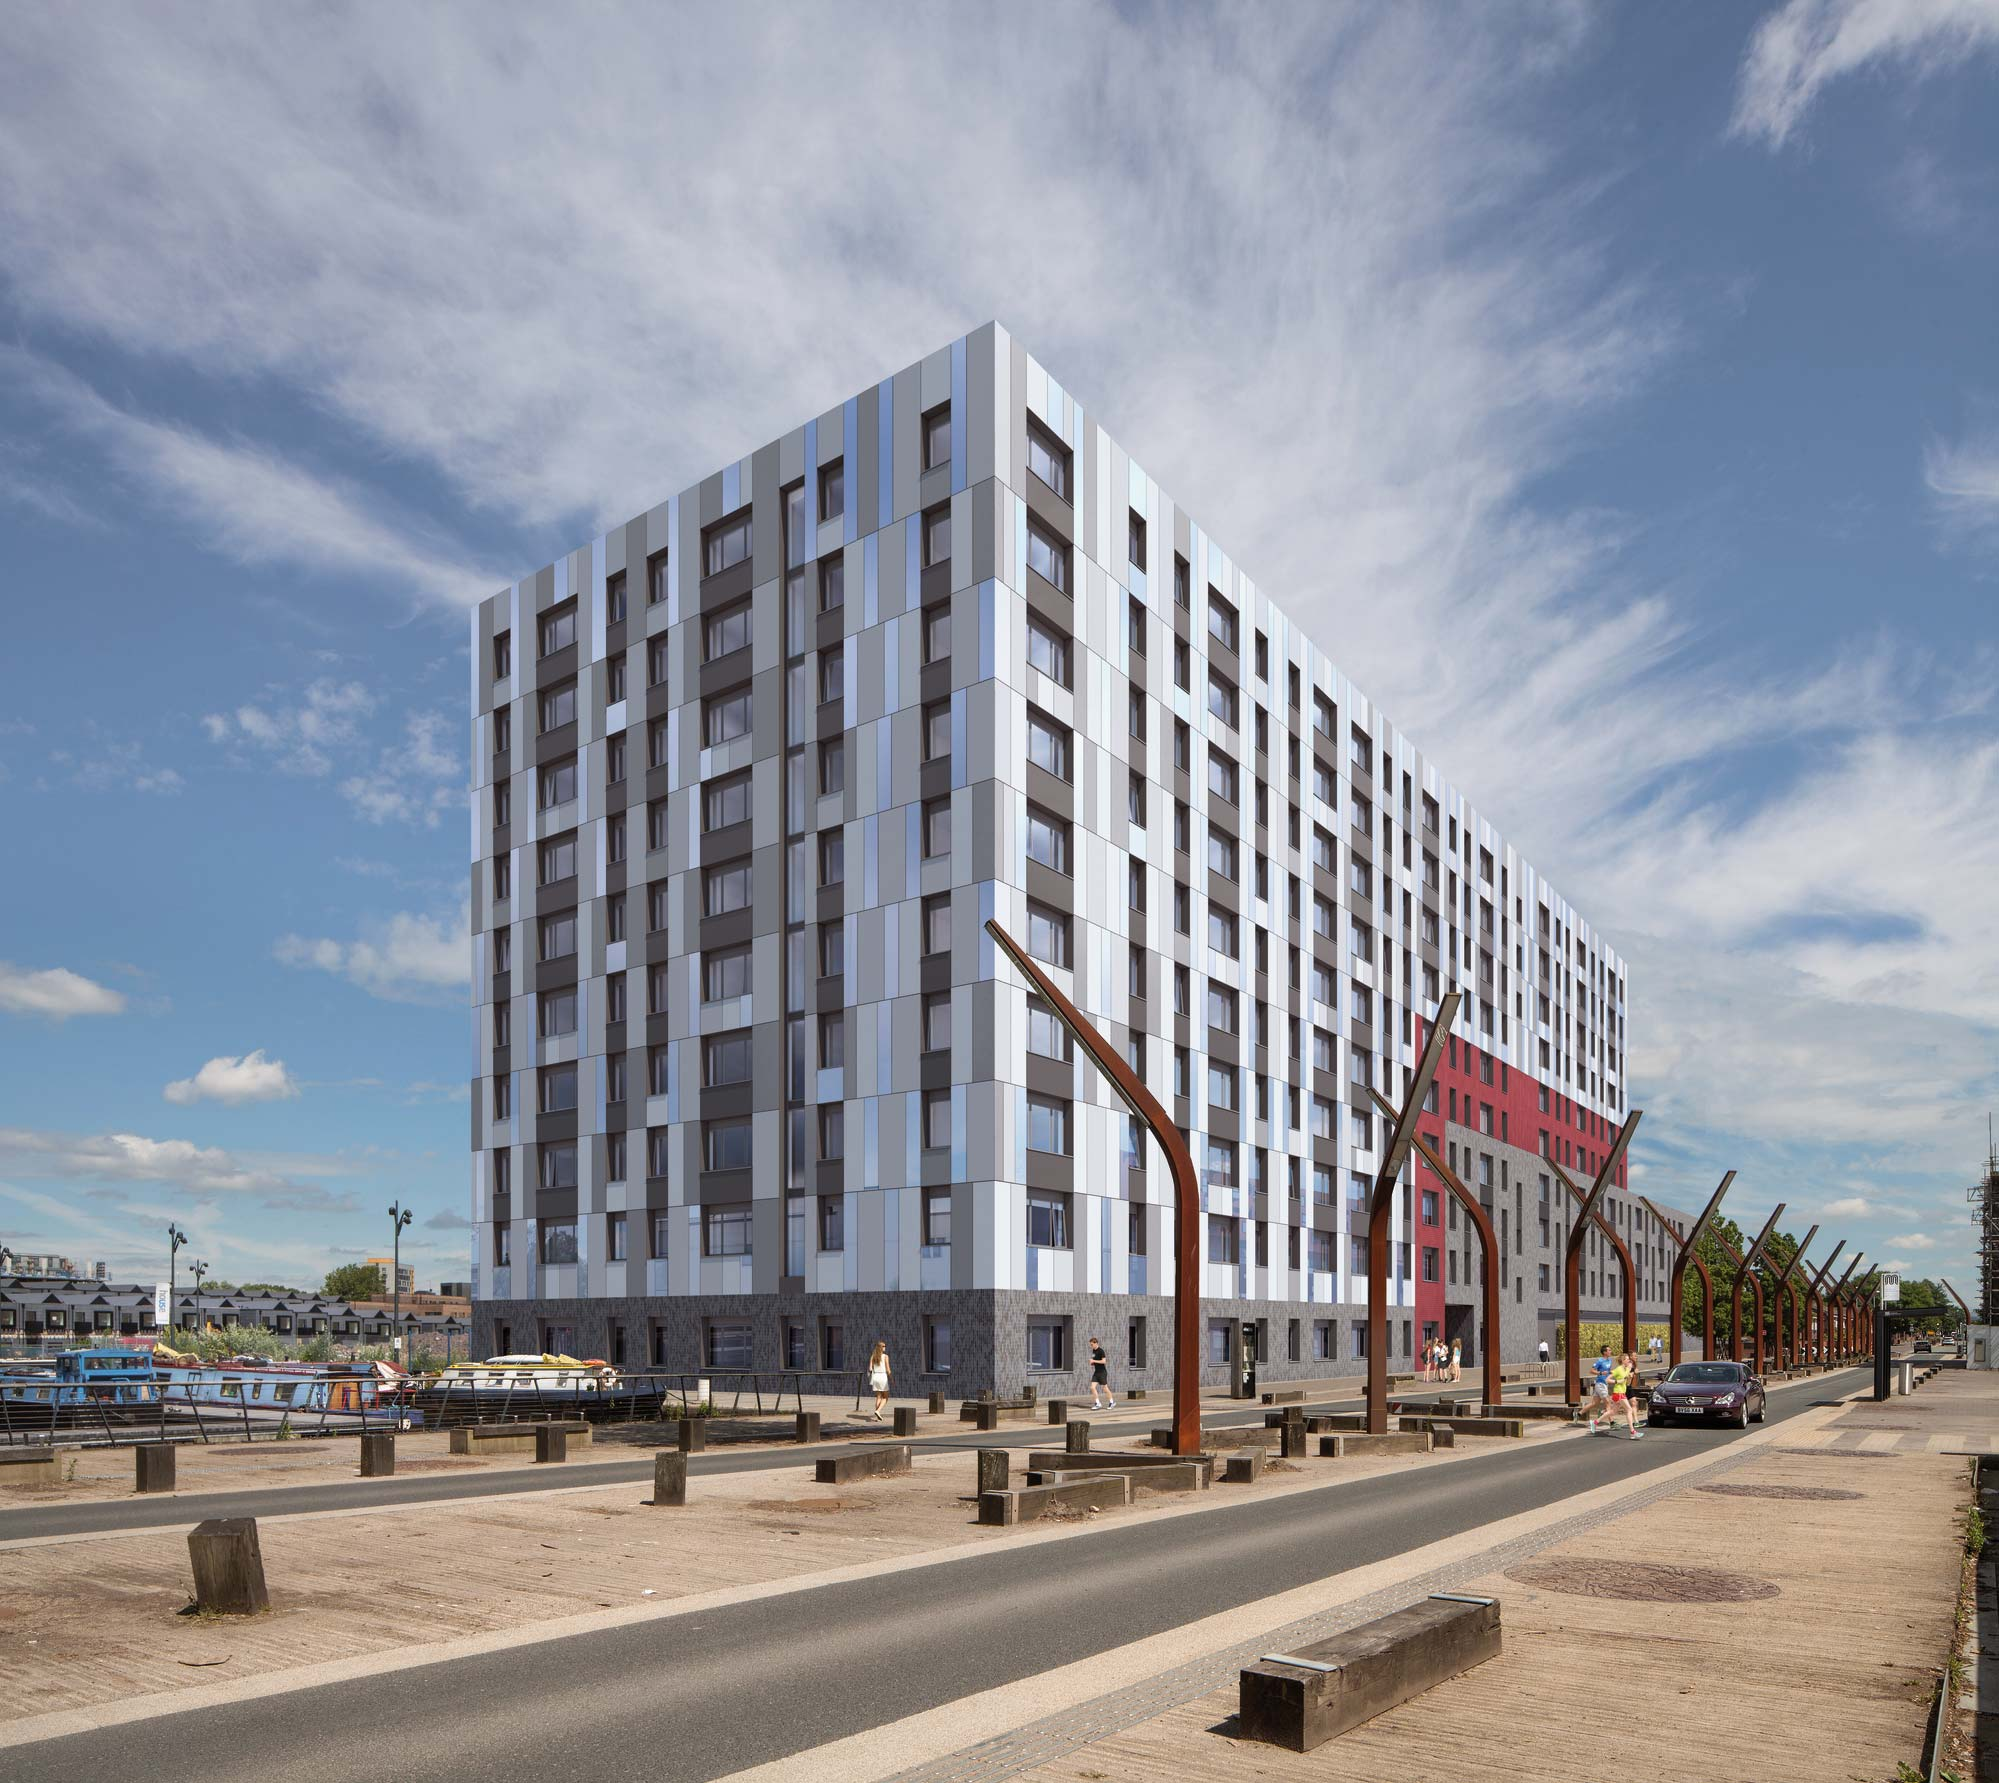 Apartment scheme in New Islington designed by Buttress Architects